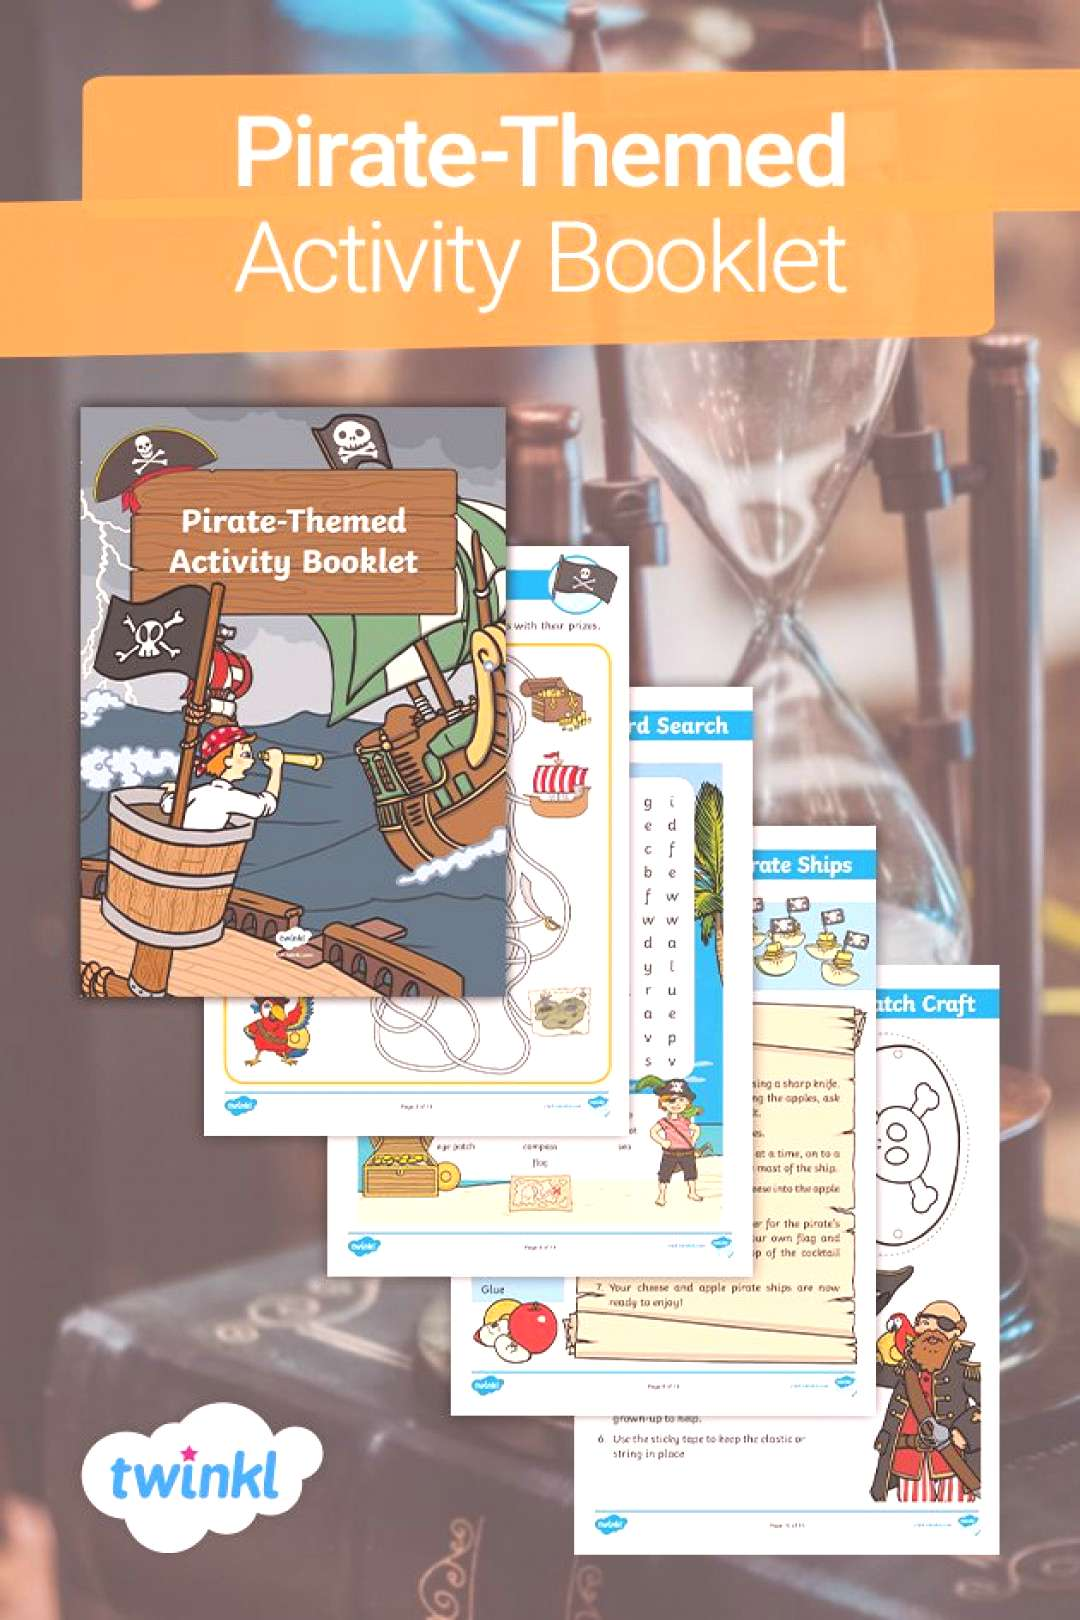 Pirate-Themed Activity Booklet! If your child loves pirates or youre having a pirate topic at sch